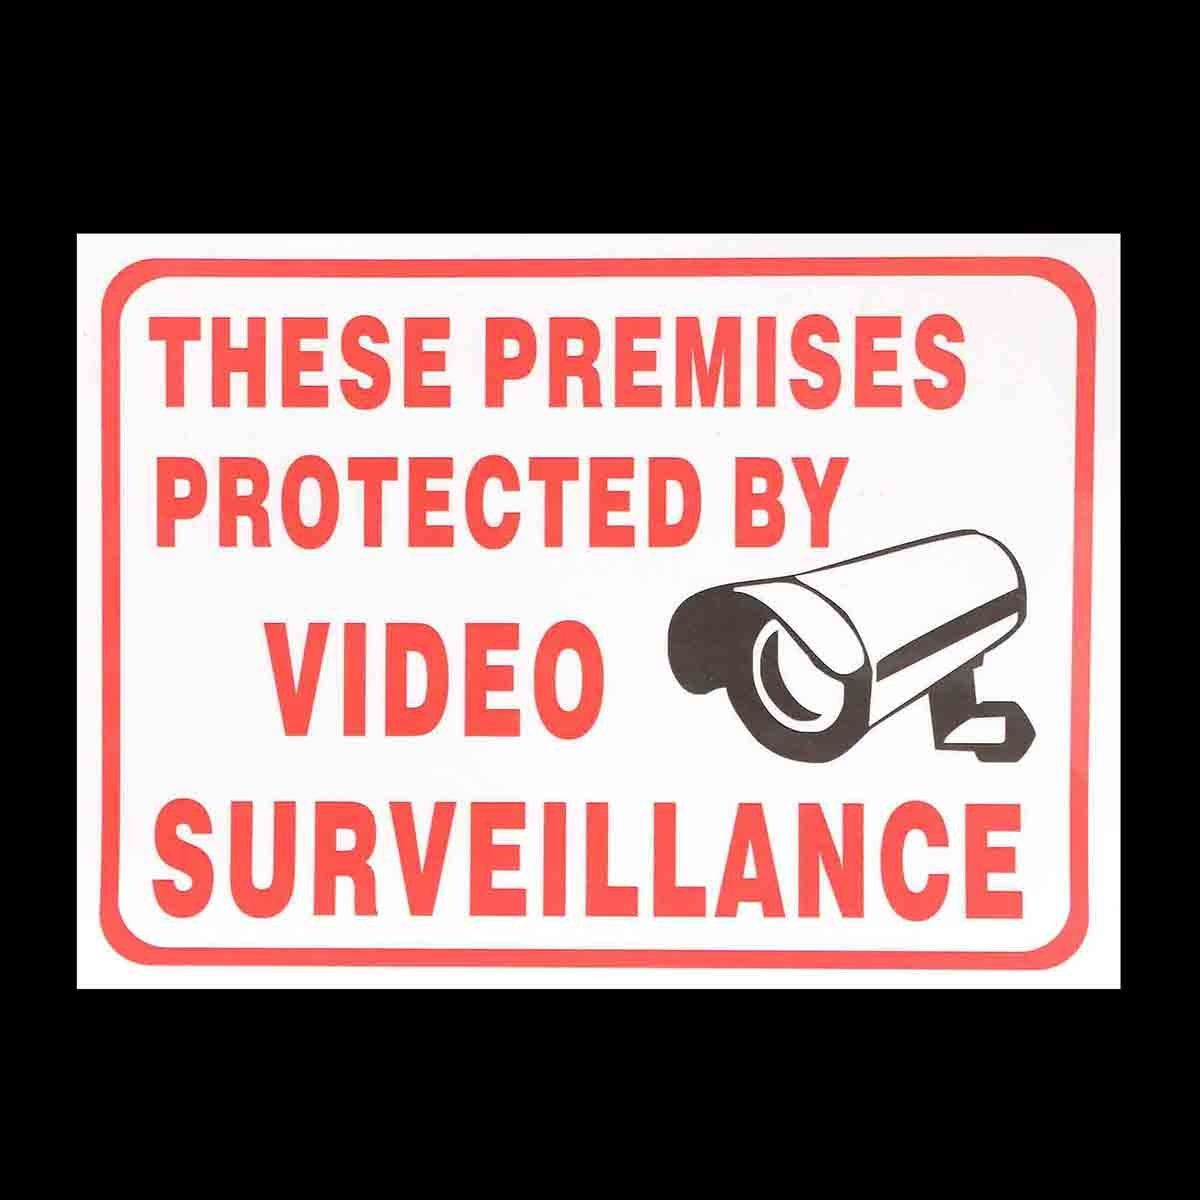 CCTV Camera Sign Sticker Self-adhensive Decal These Premises Projected By Video